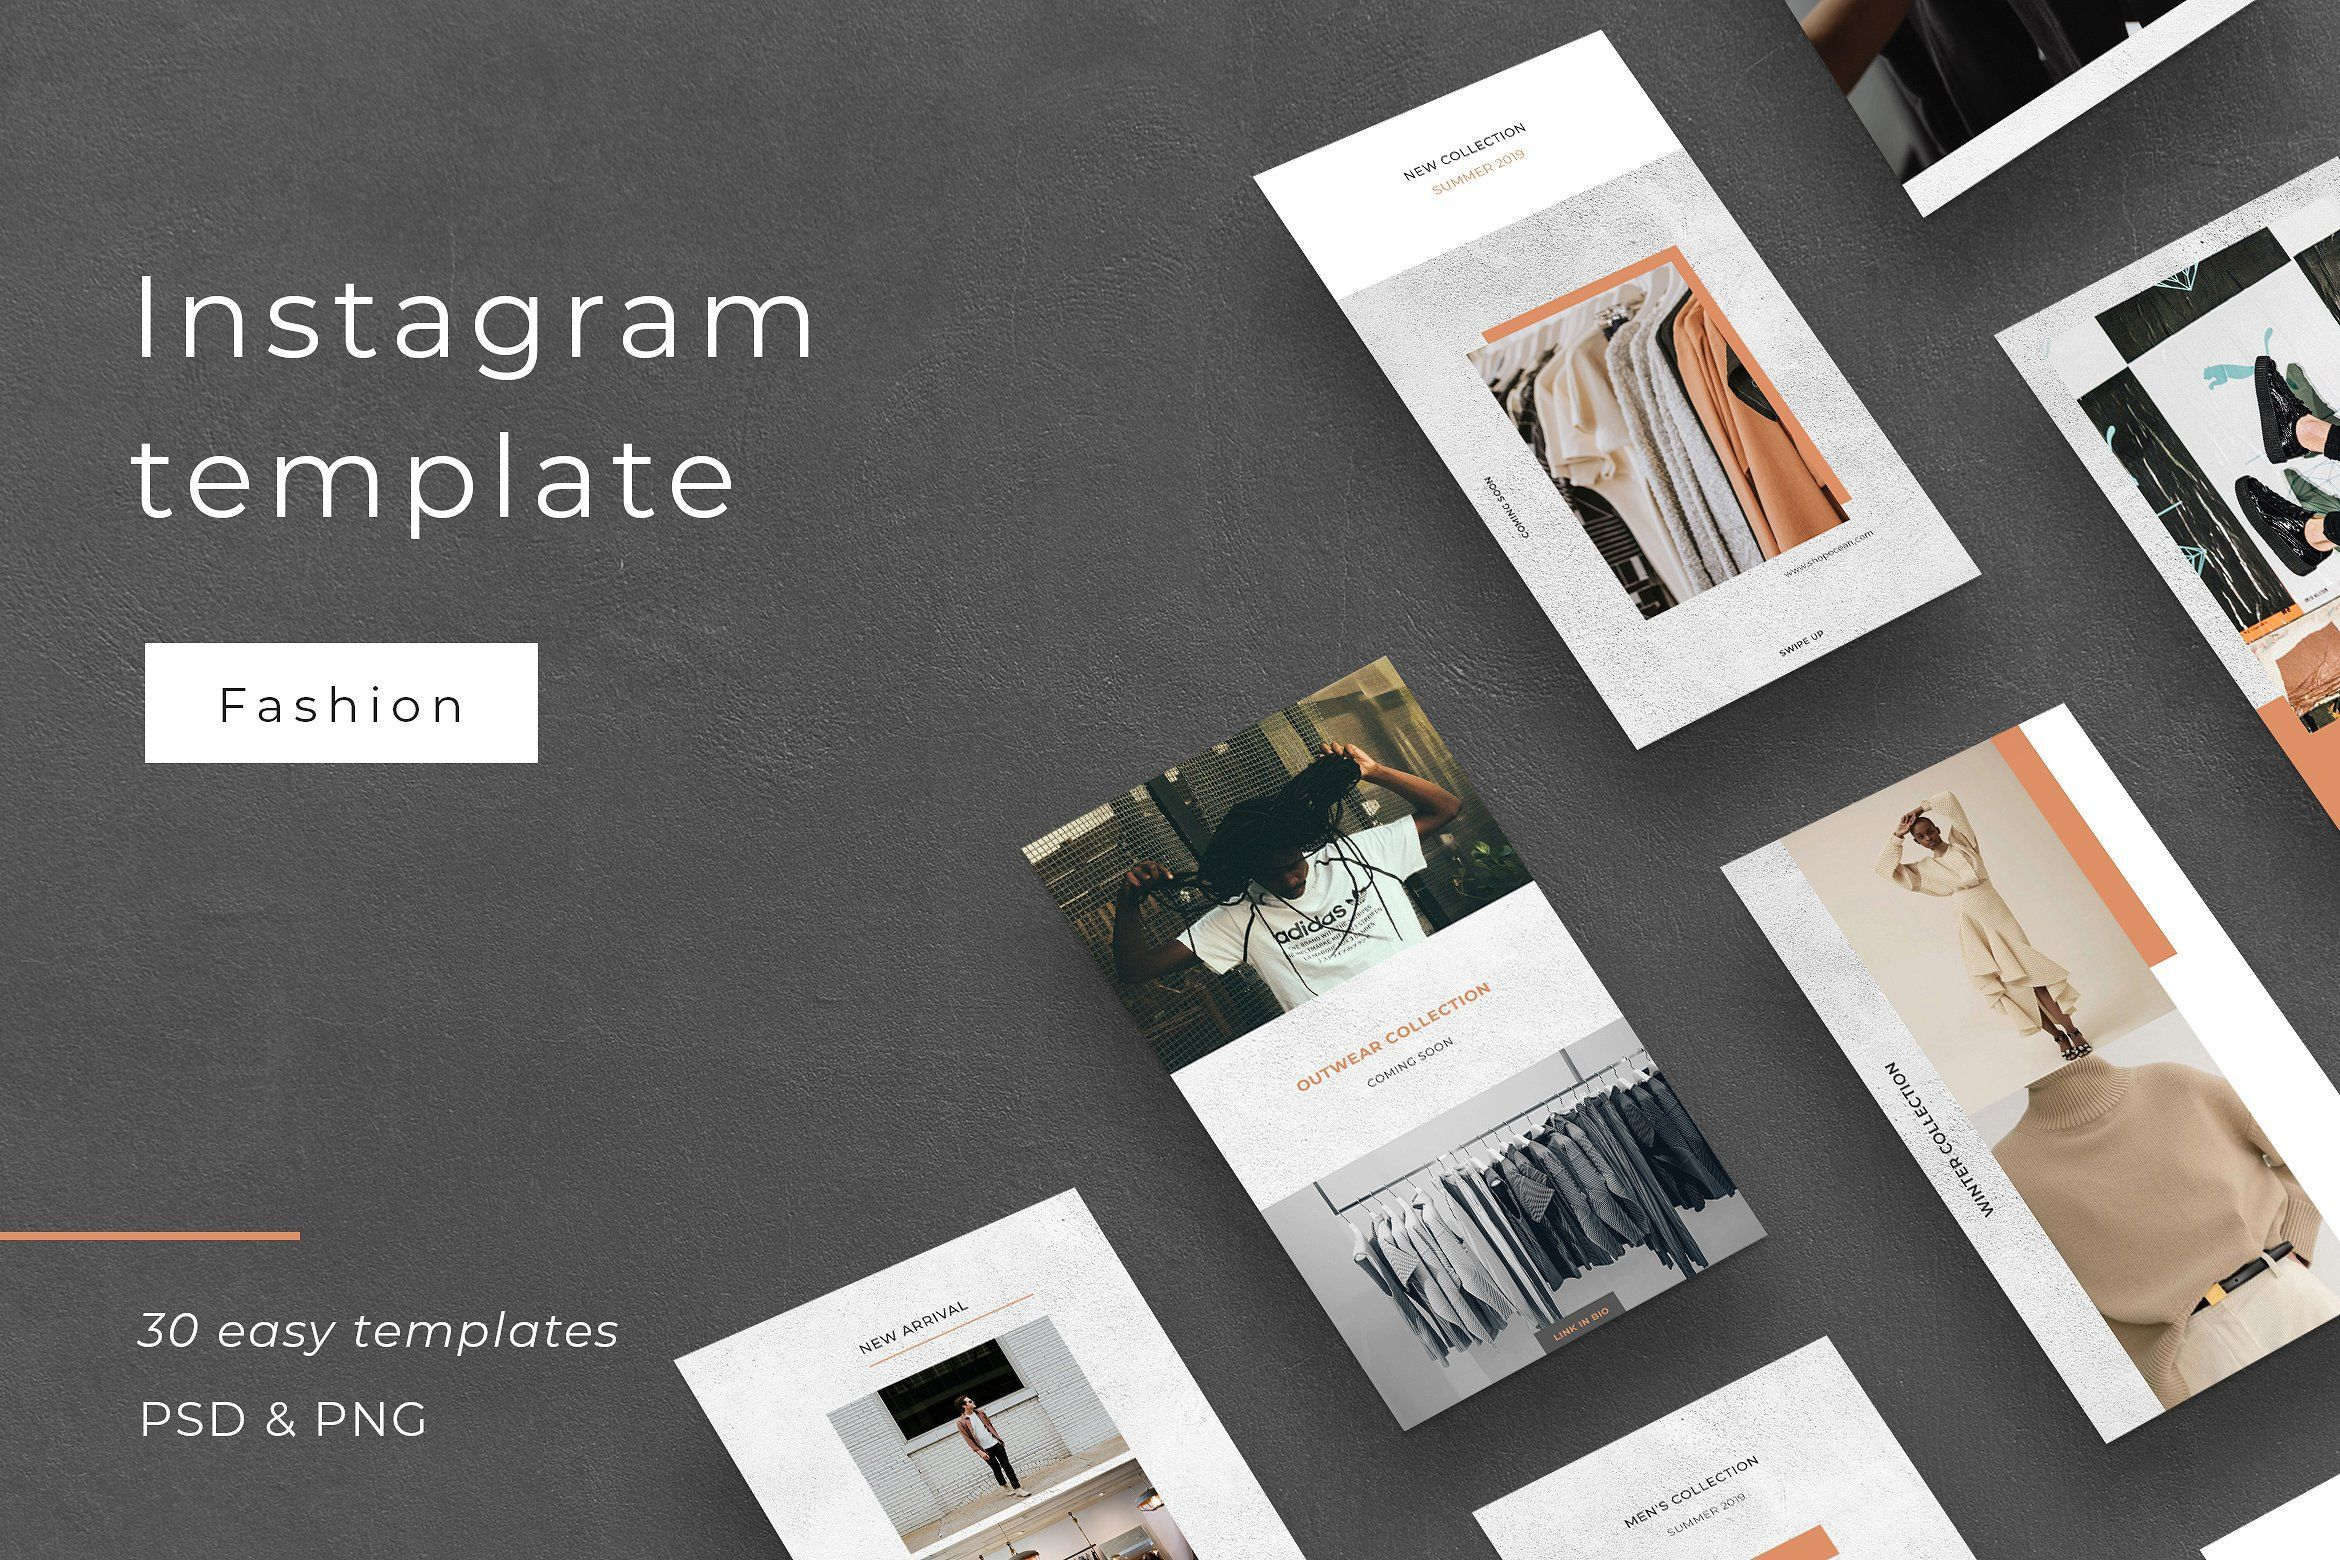 Outfit Social Media Template Instagram Template Social Media Template Instagram Story Template